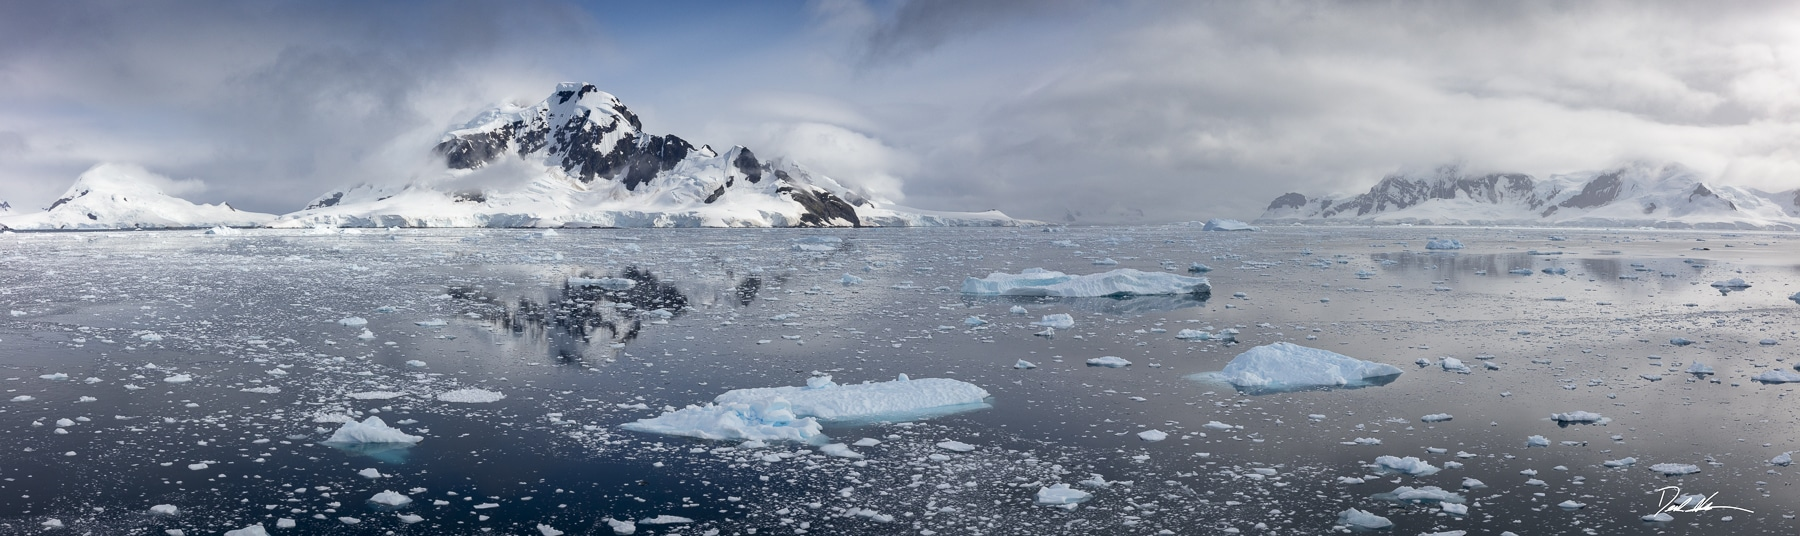 mountains surrounded by ice in Antarctica